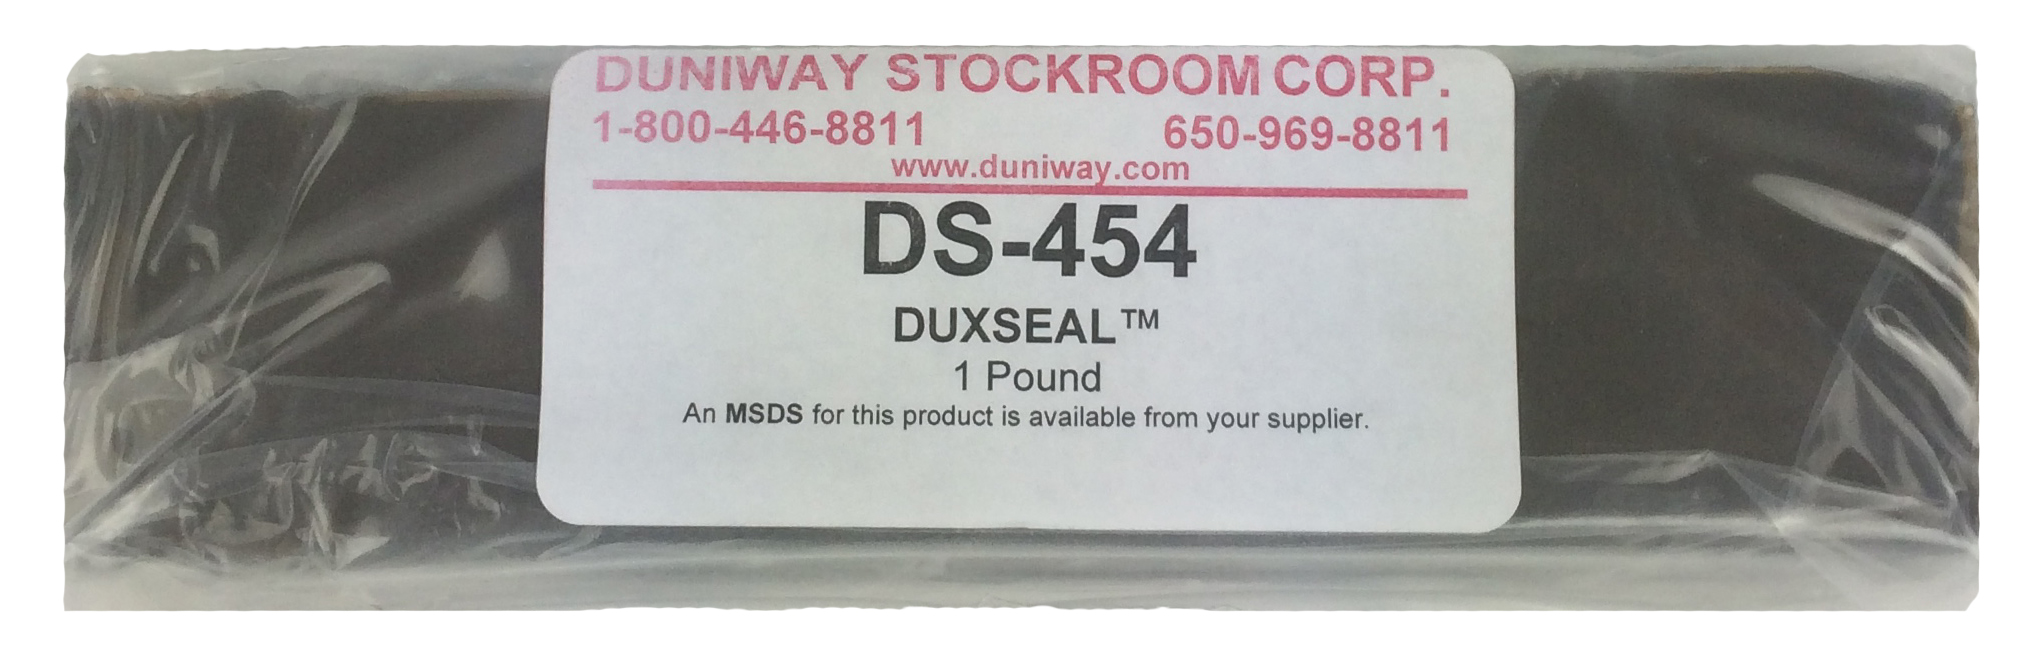 Duxseal Temporary Sealer 1 Pound Easily Removed